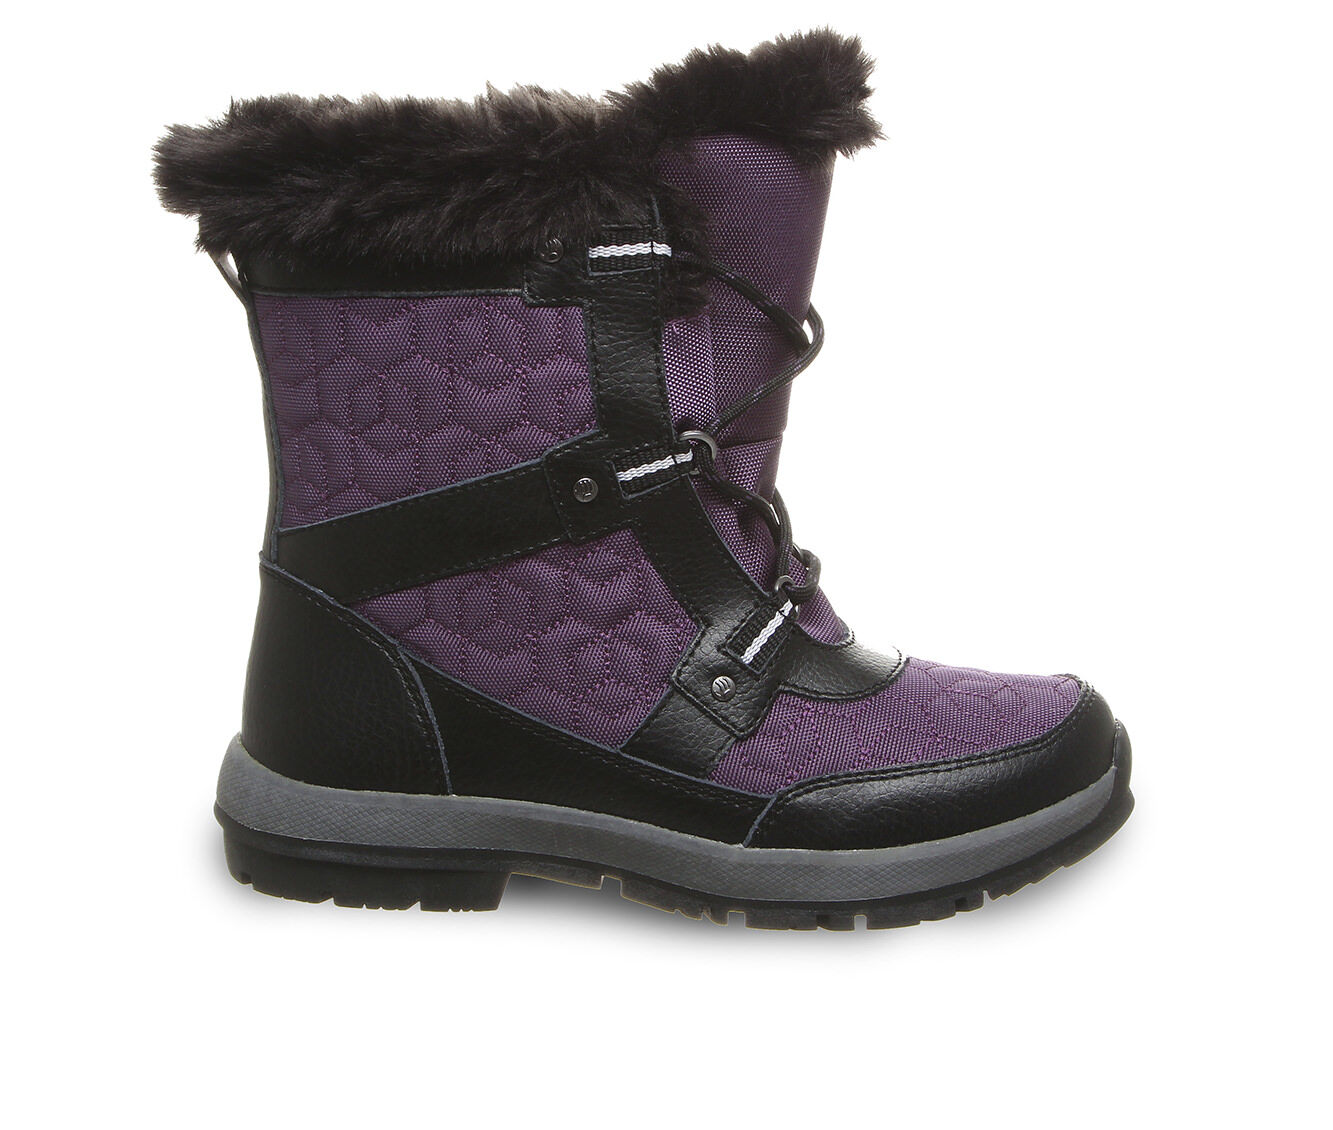 Low Cost Women's Bearpaw Marina Winter Boots Plum